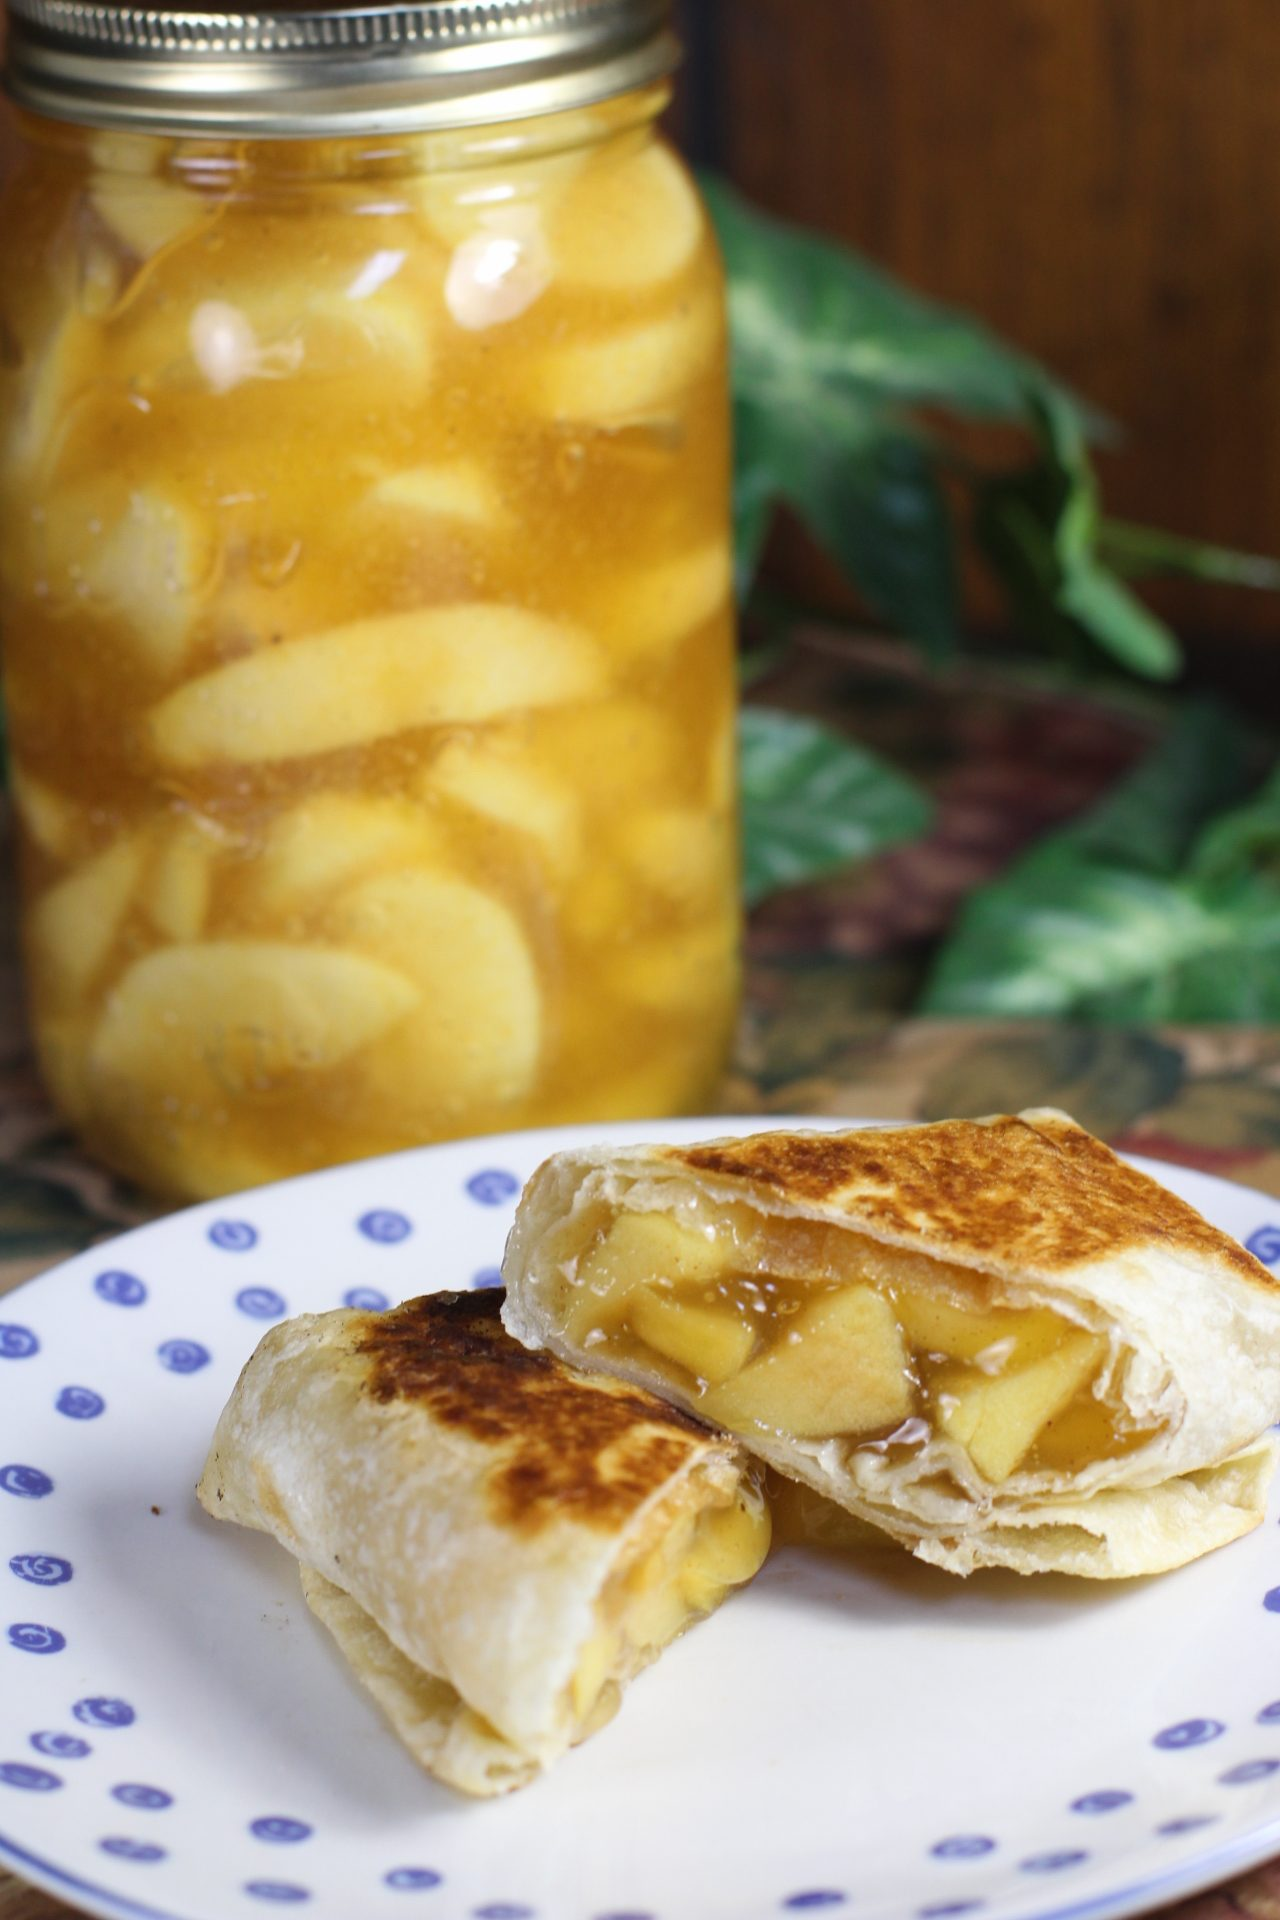 Apple Pie Filling – Home Canned with love